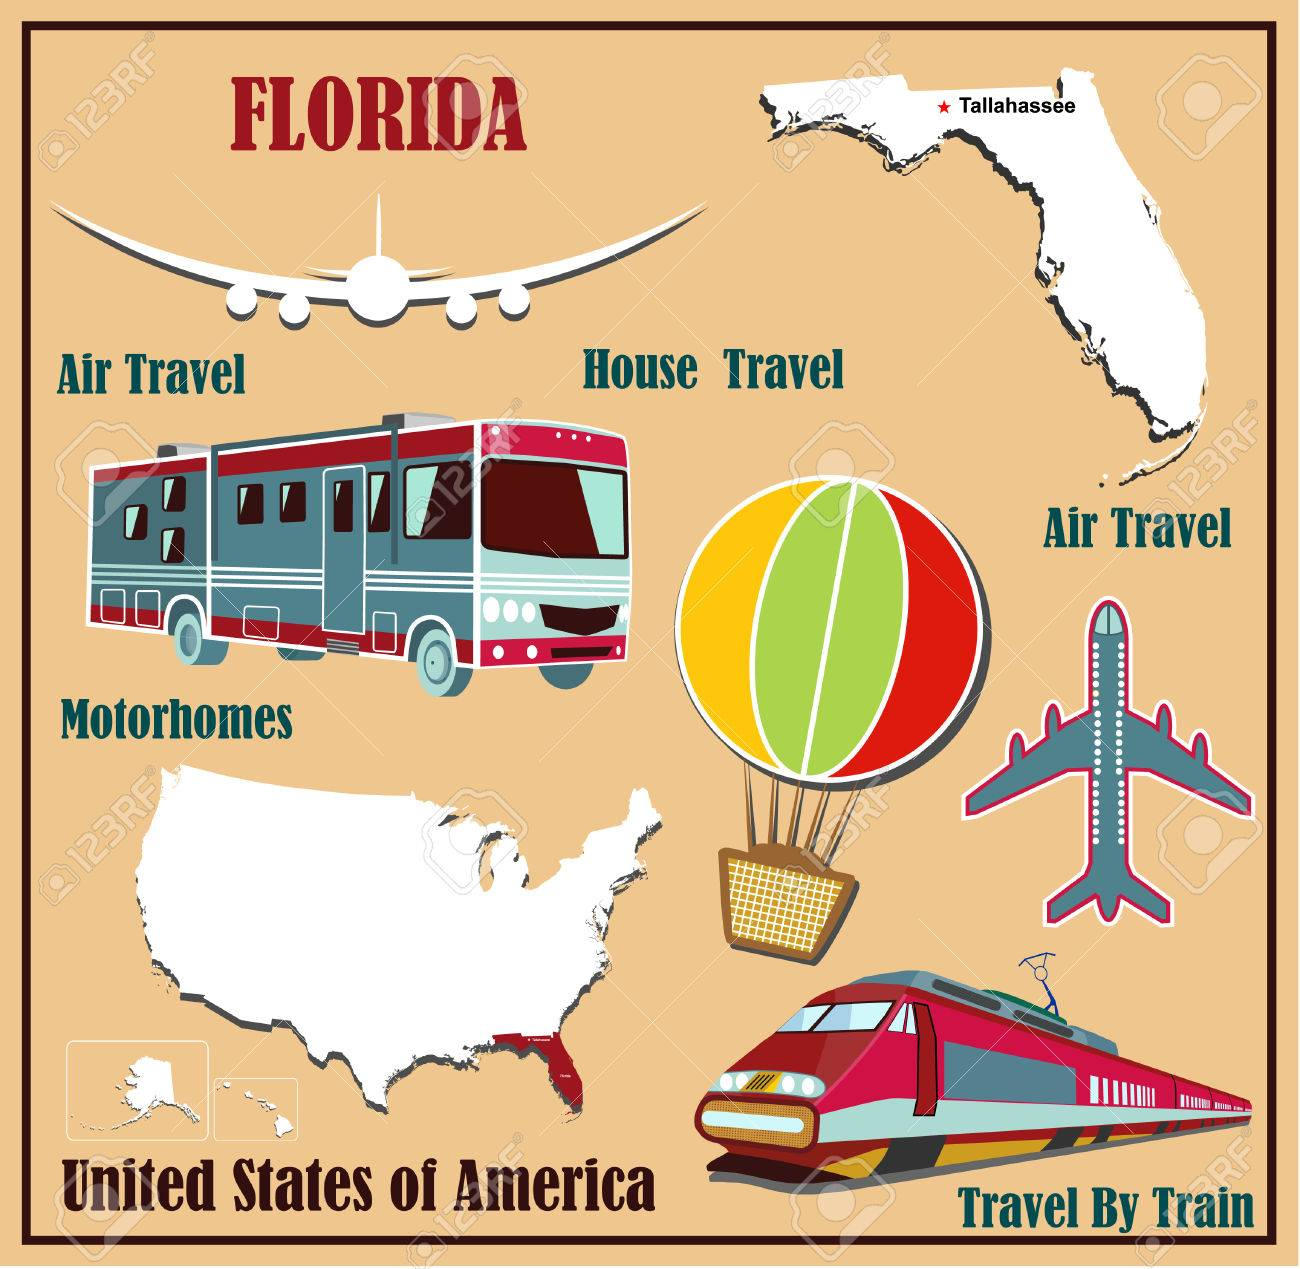 Florida Map Vector Cliparts Stock Vector And Royalty Free - Florida map vector free